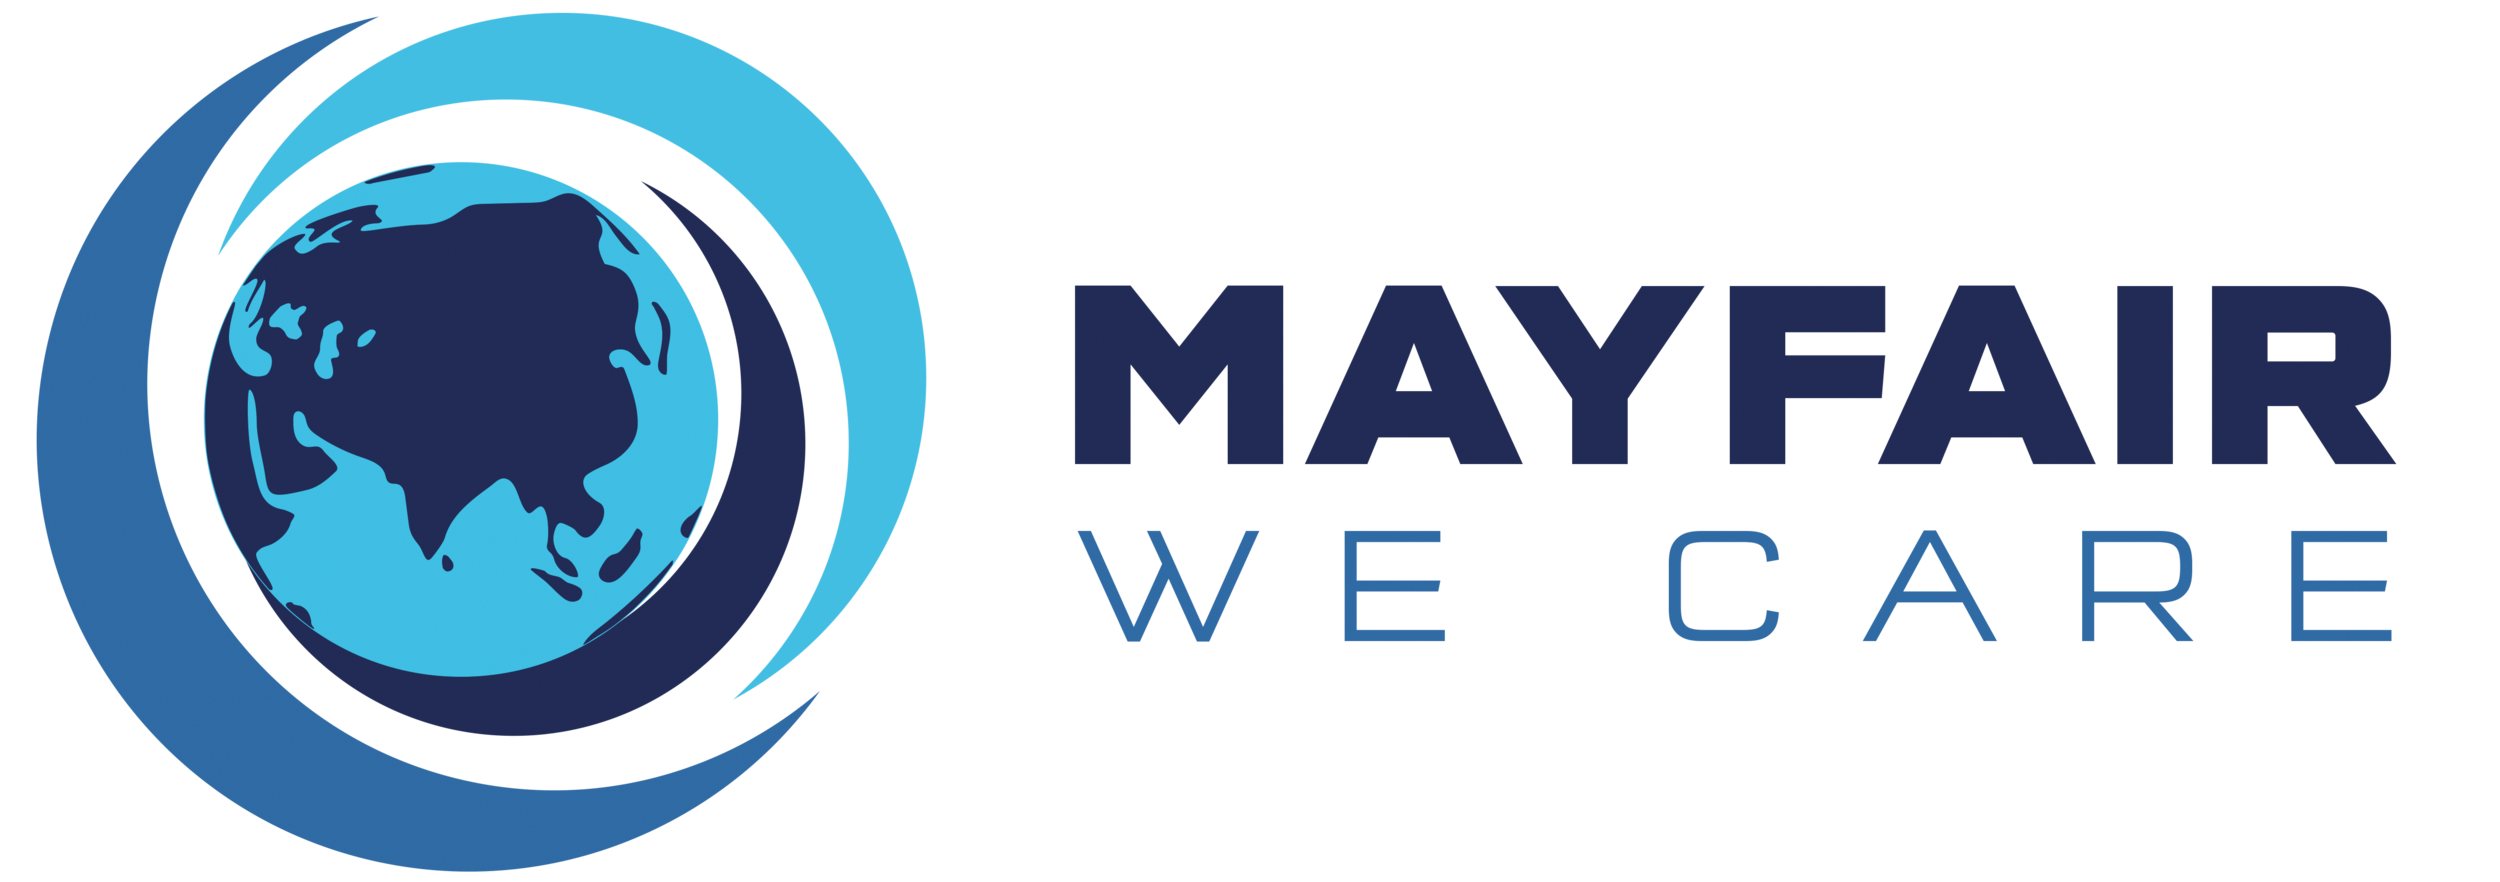 Mayfair new logo-simple globe-text right (1).png